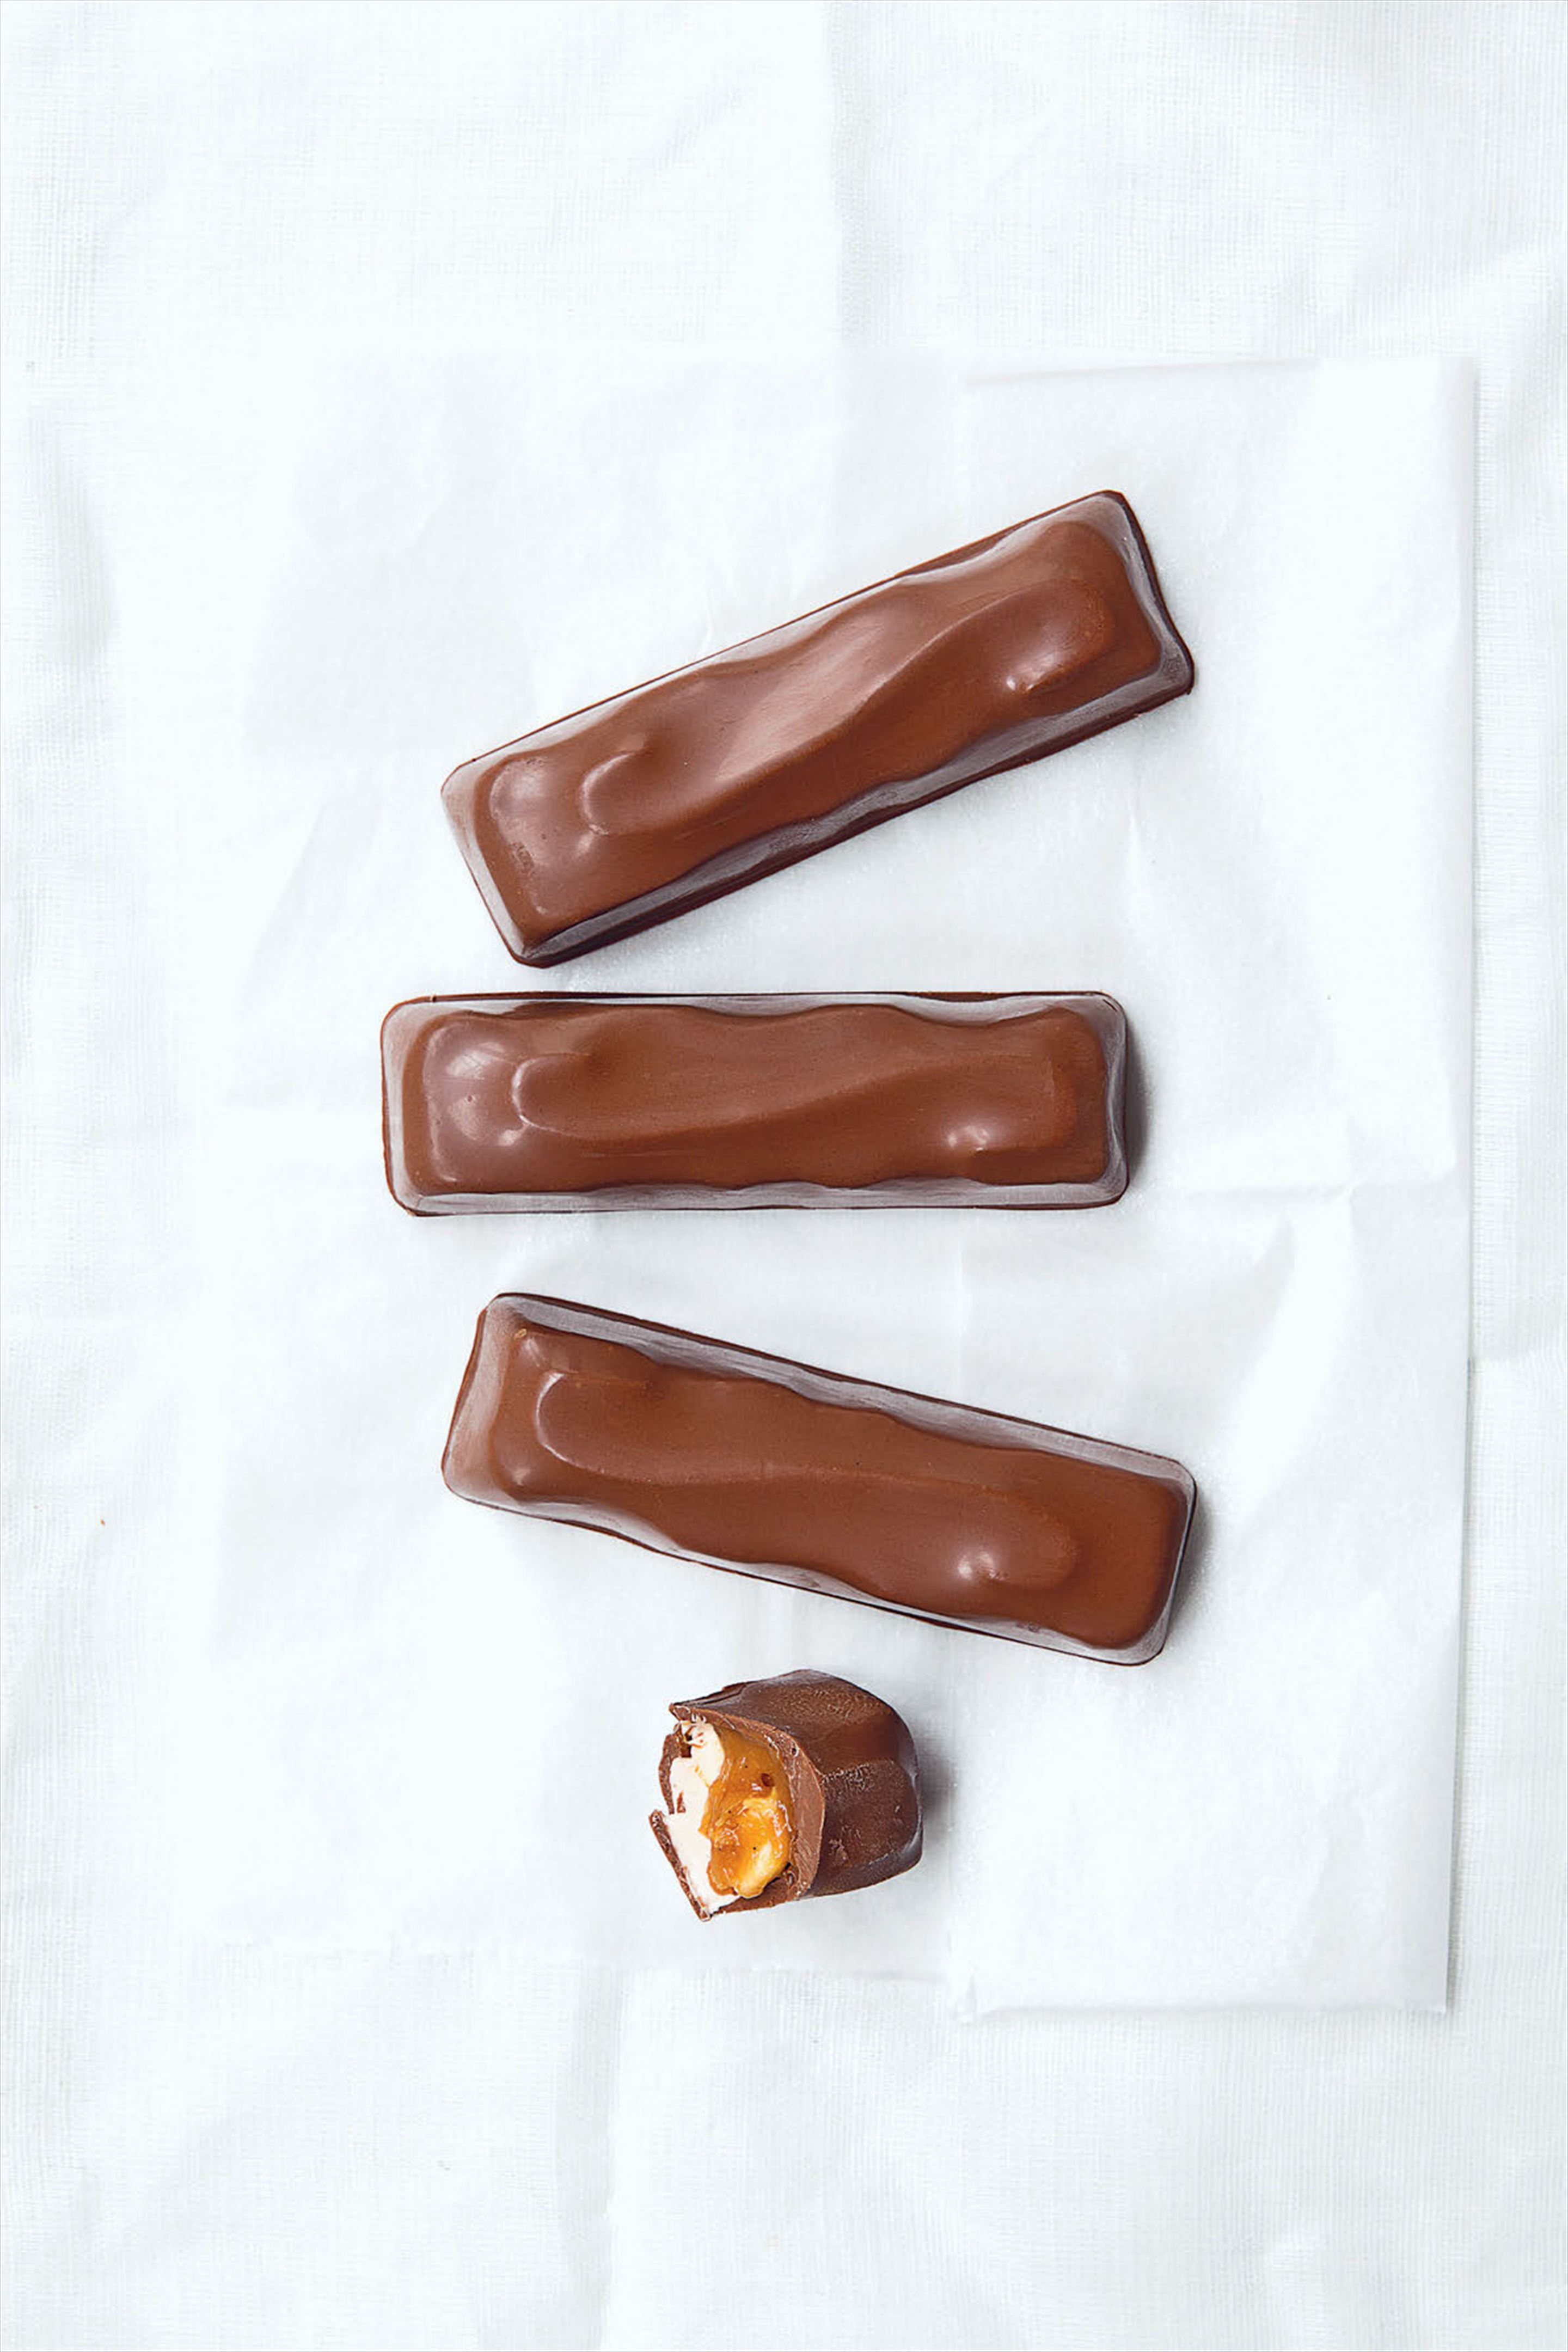 Peanut and caramel chocolate bars